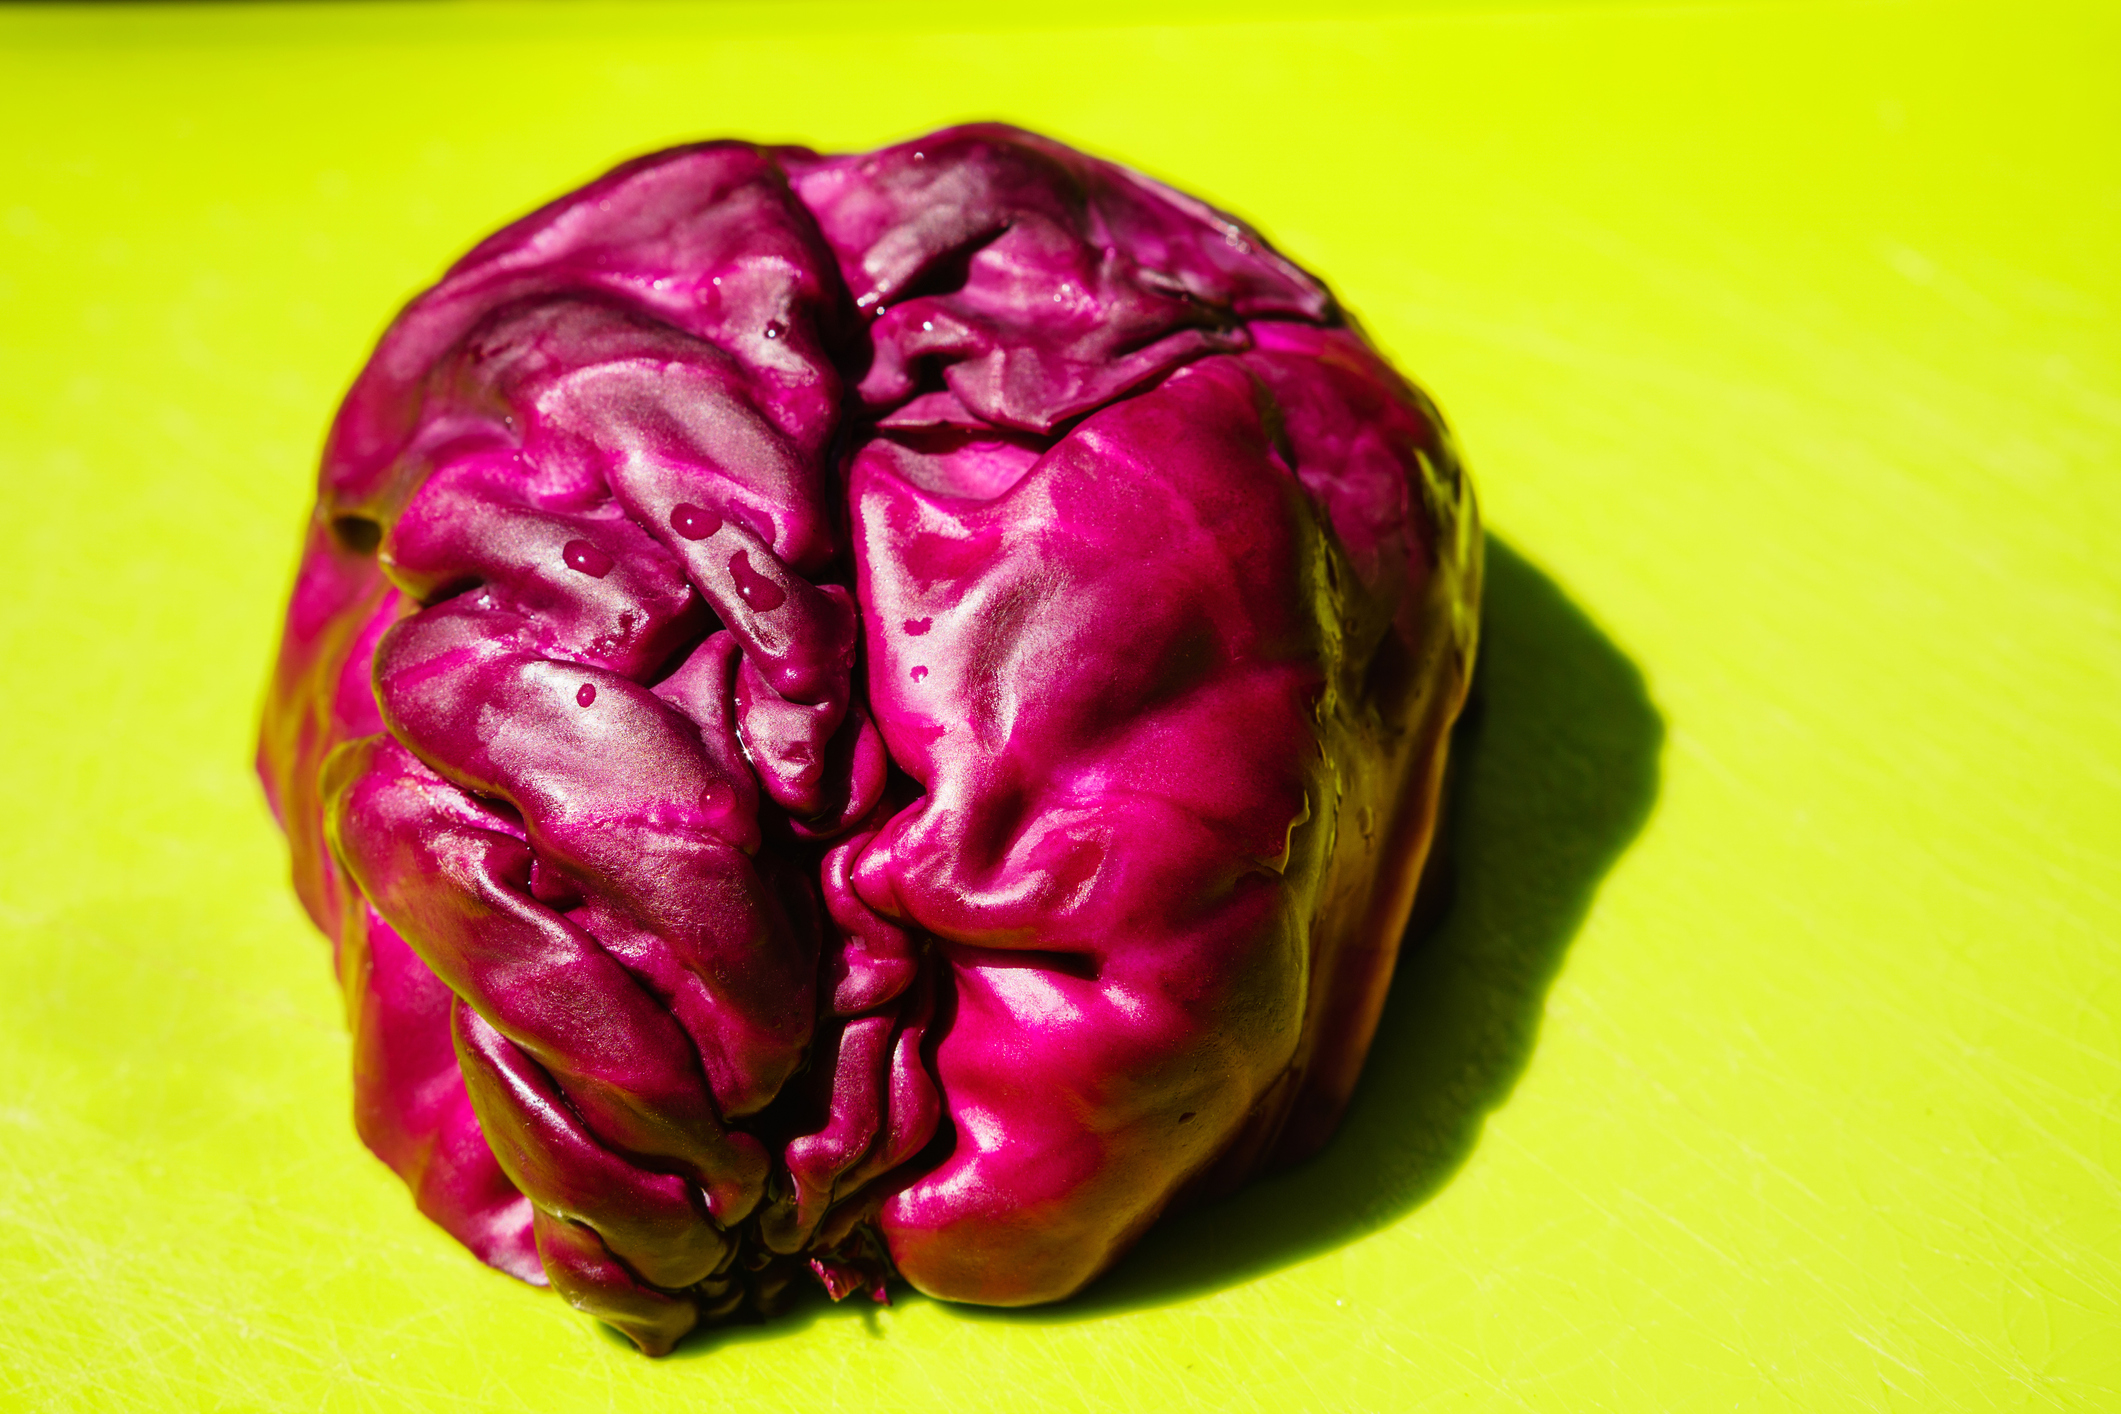 Foods that slow brain aging by boosting its blood supply